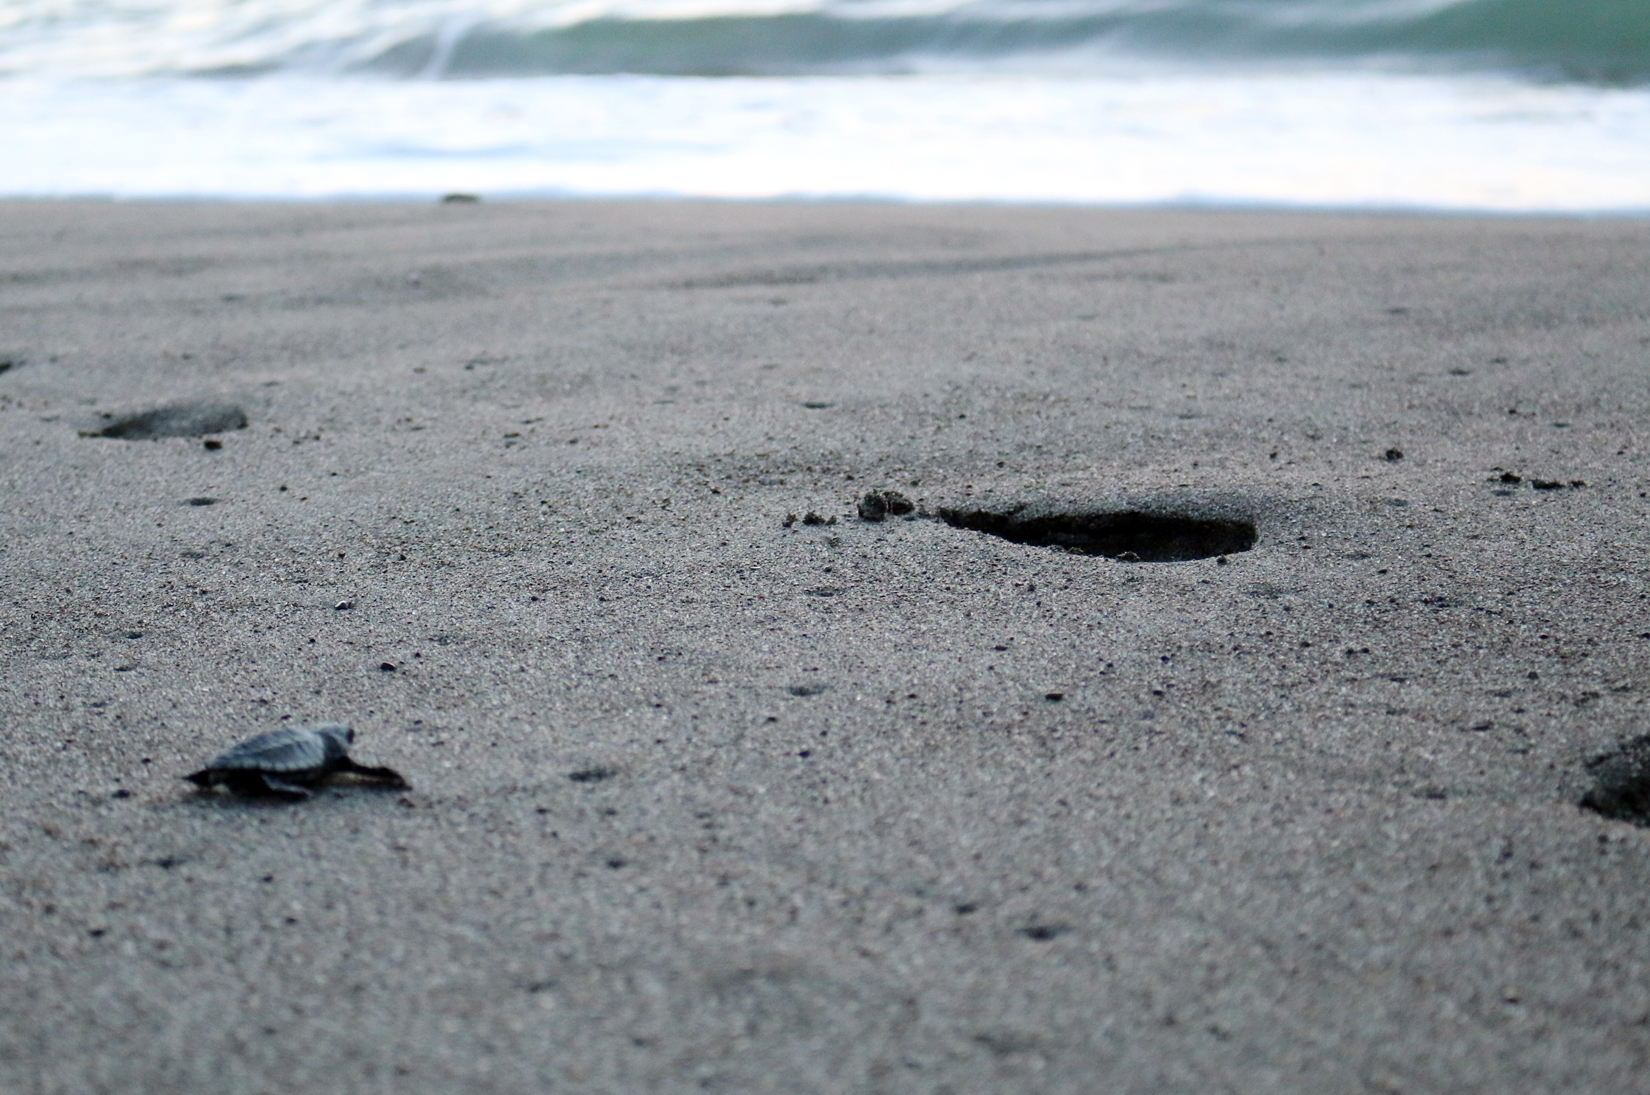 Sifcare science of identity foundation 583 baby sea turtles sent more are expected in the coming weeks so these next 2 months would be the best time to hit the beach and put care into action by helping baby sea turtles publicscrutiny Gallery